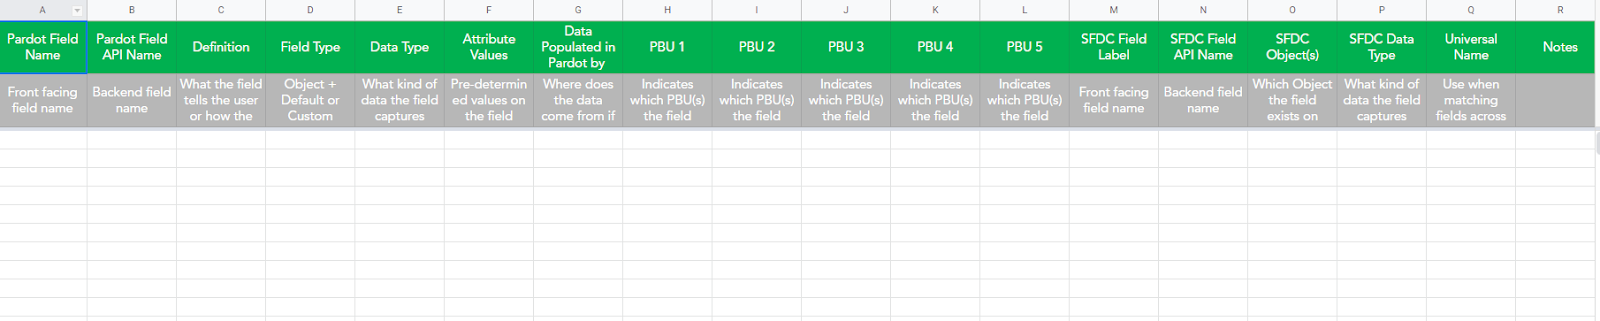 Field mapping spreadsheet example